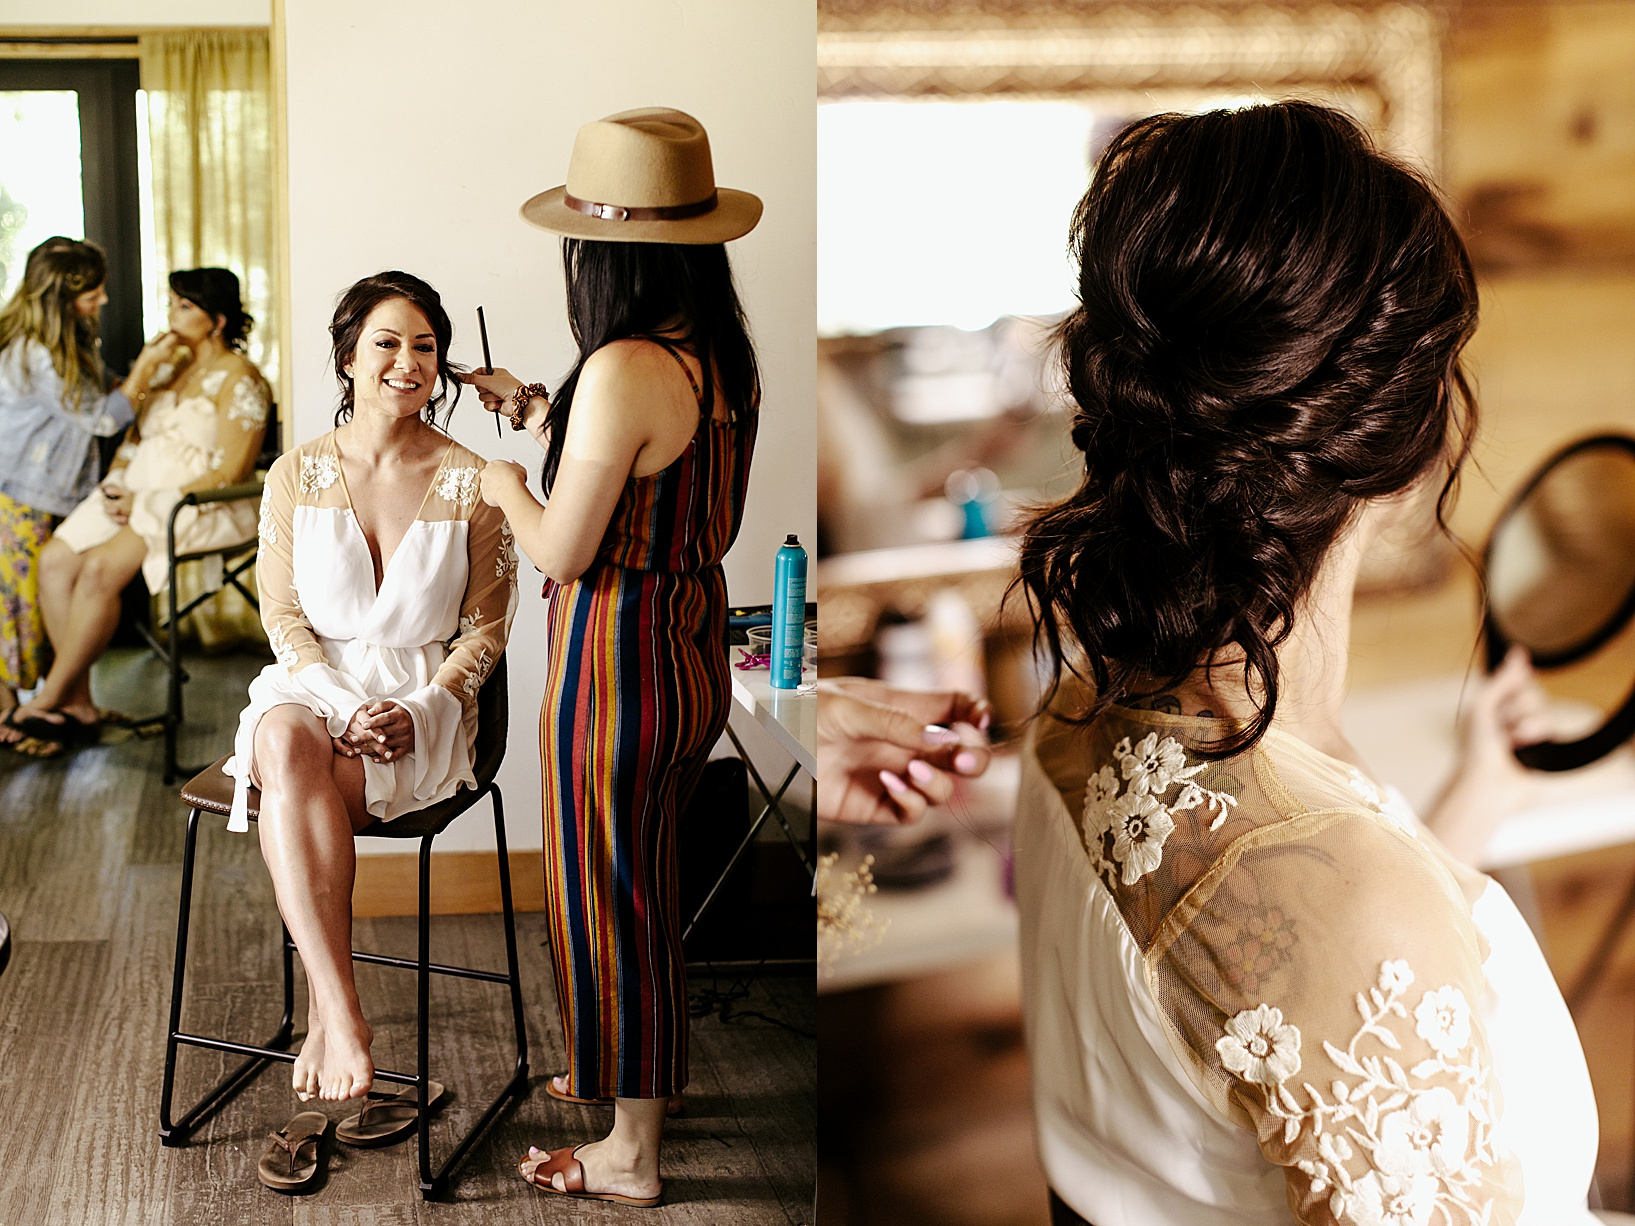 getting ready for Temecula wedding at Galway Downs